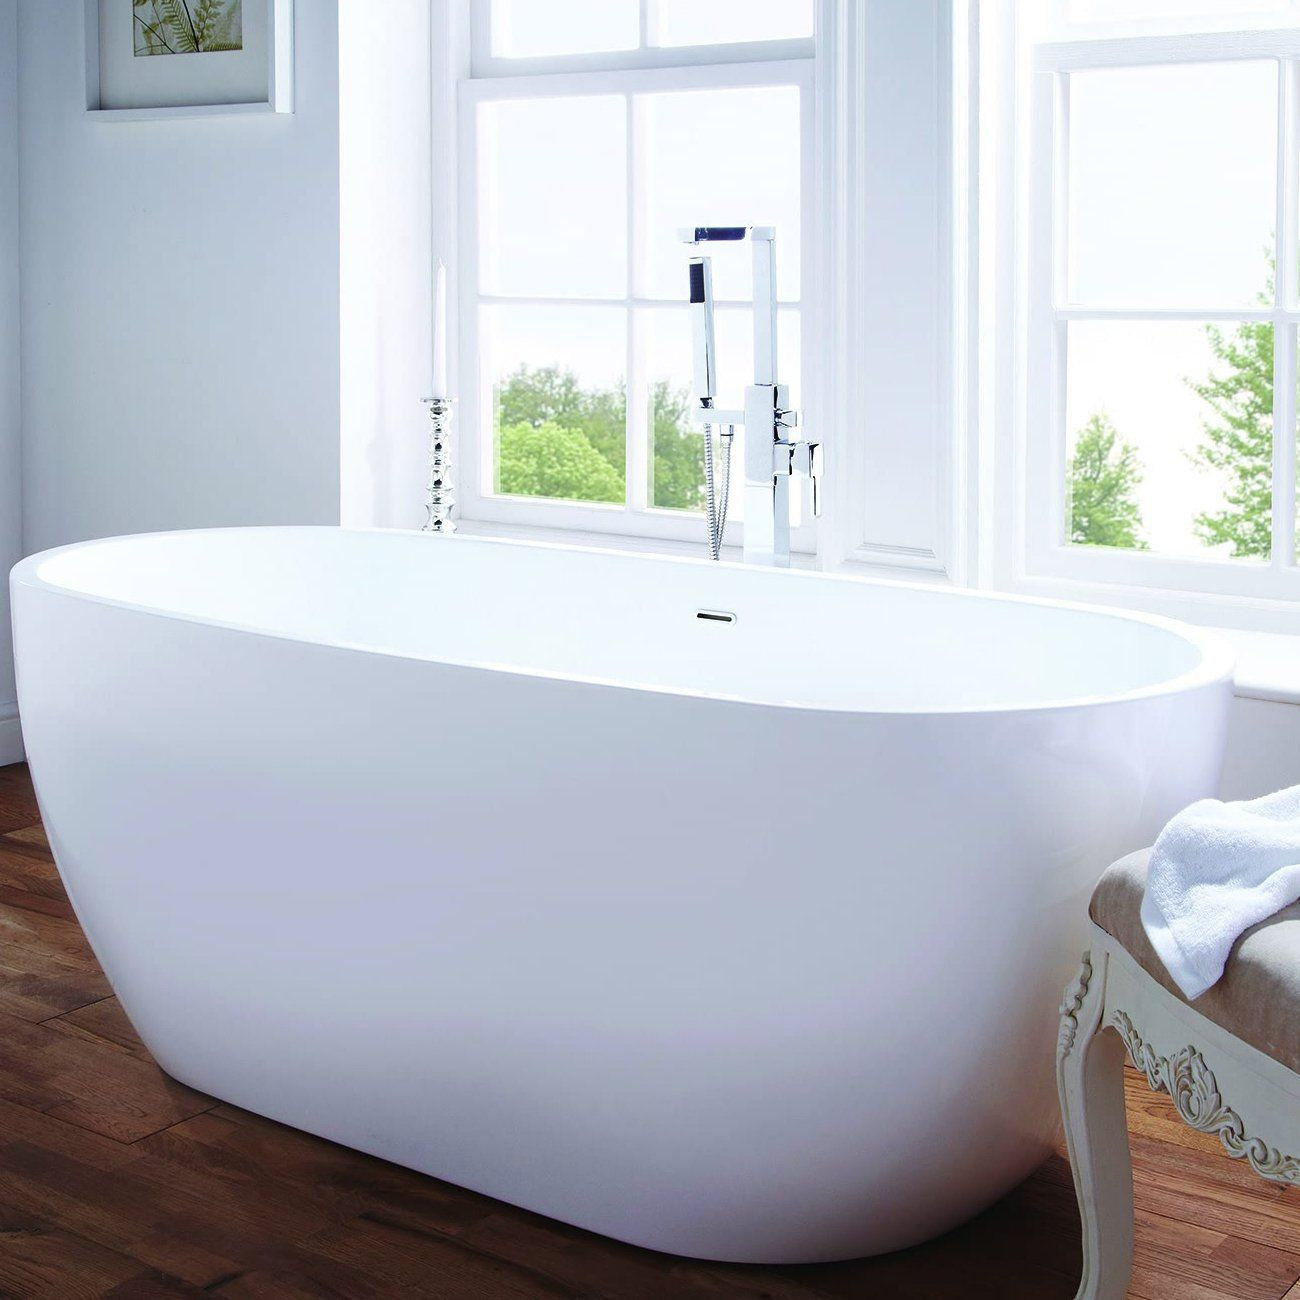 Verona Summit Freestanding Double Ended Bath 1480mm x 750mm - White ...